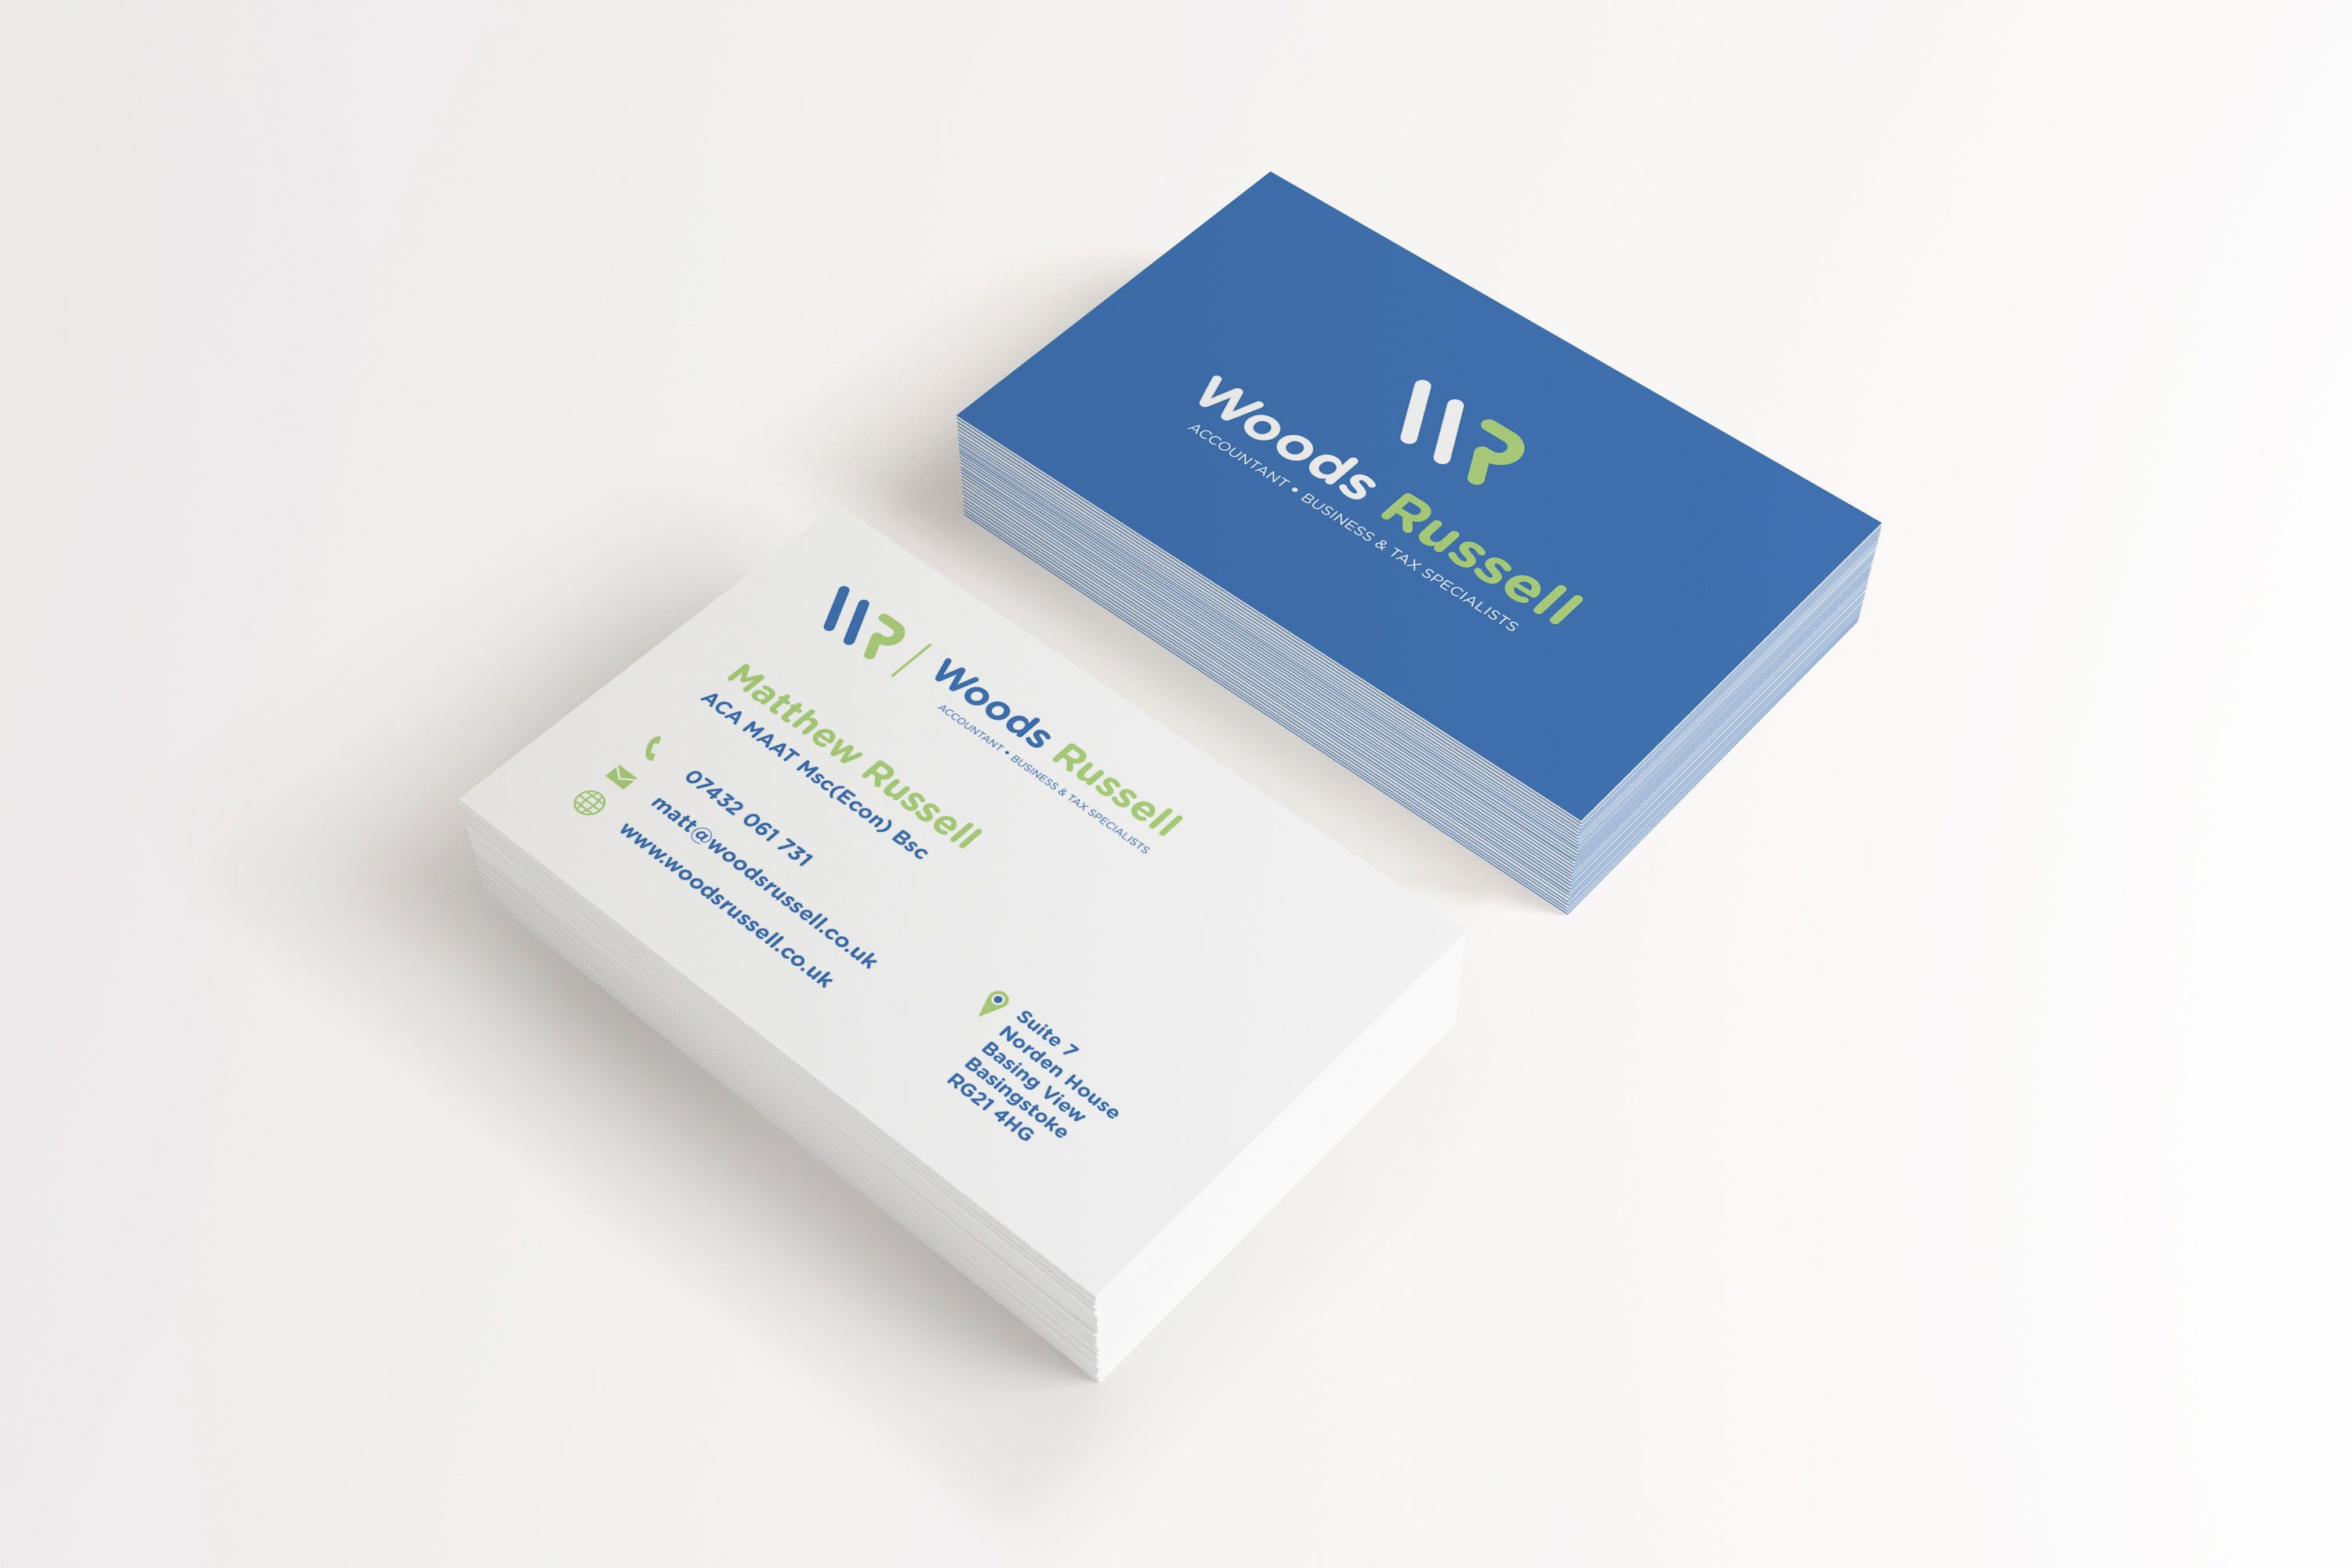 Woods Russell Business Cards Stationery Branding Branding Stationery